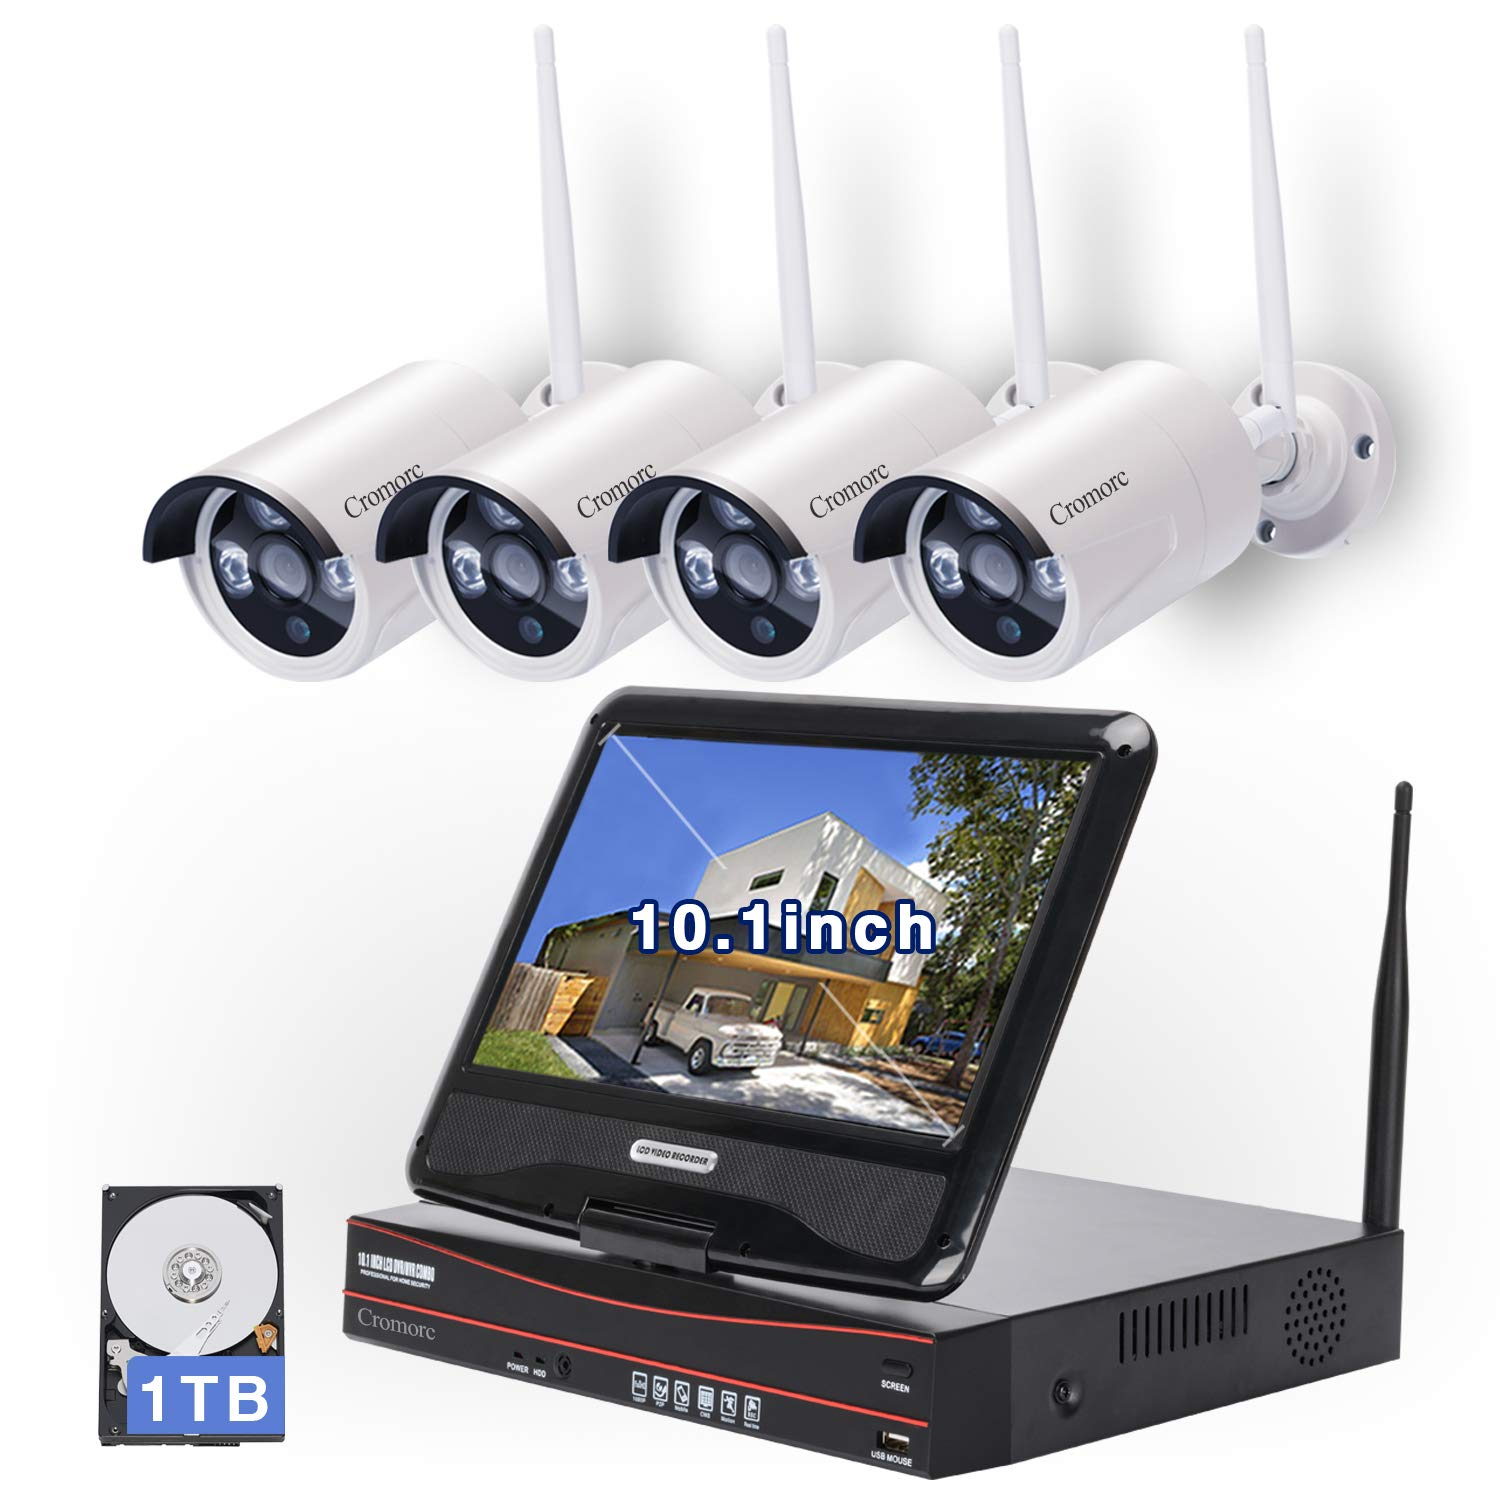 [8CH, Expandable] All in one with 10.1 inches Monitor Wireless Security Camera System, Home Business CCTV Surveillance 1080P NVR Kit, 4pcs 960P Indoor Outdoor Night Vision IP Camera, 1TB Hard Drive by Cromorc